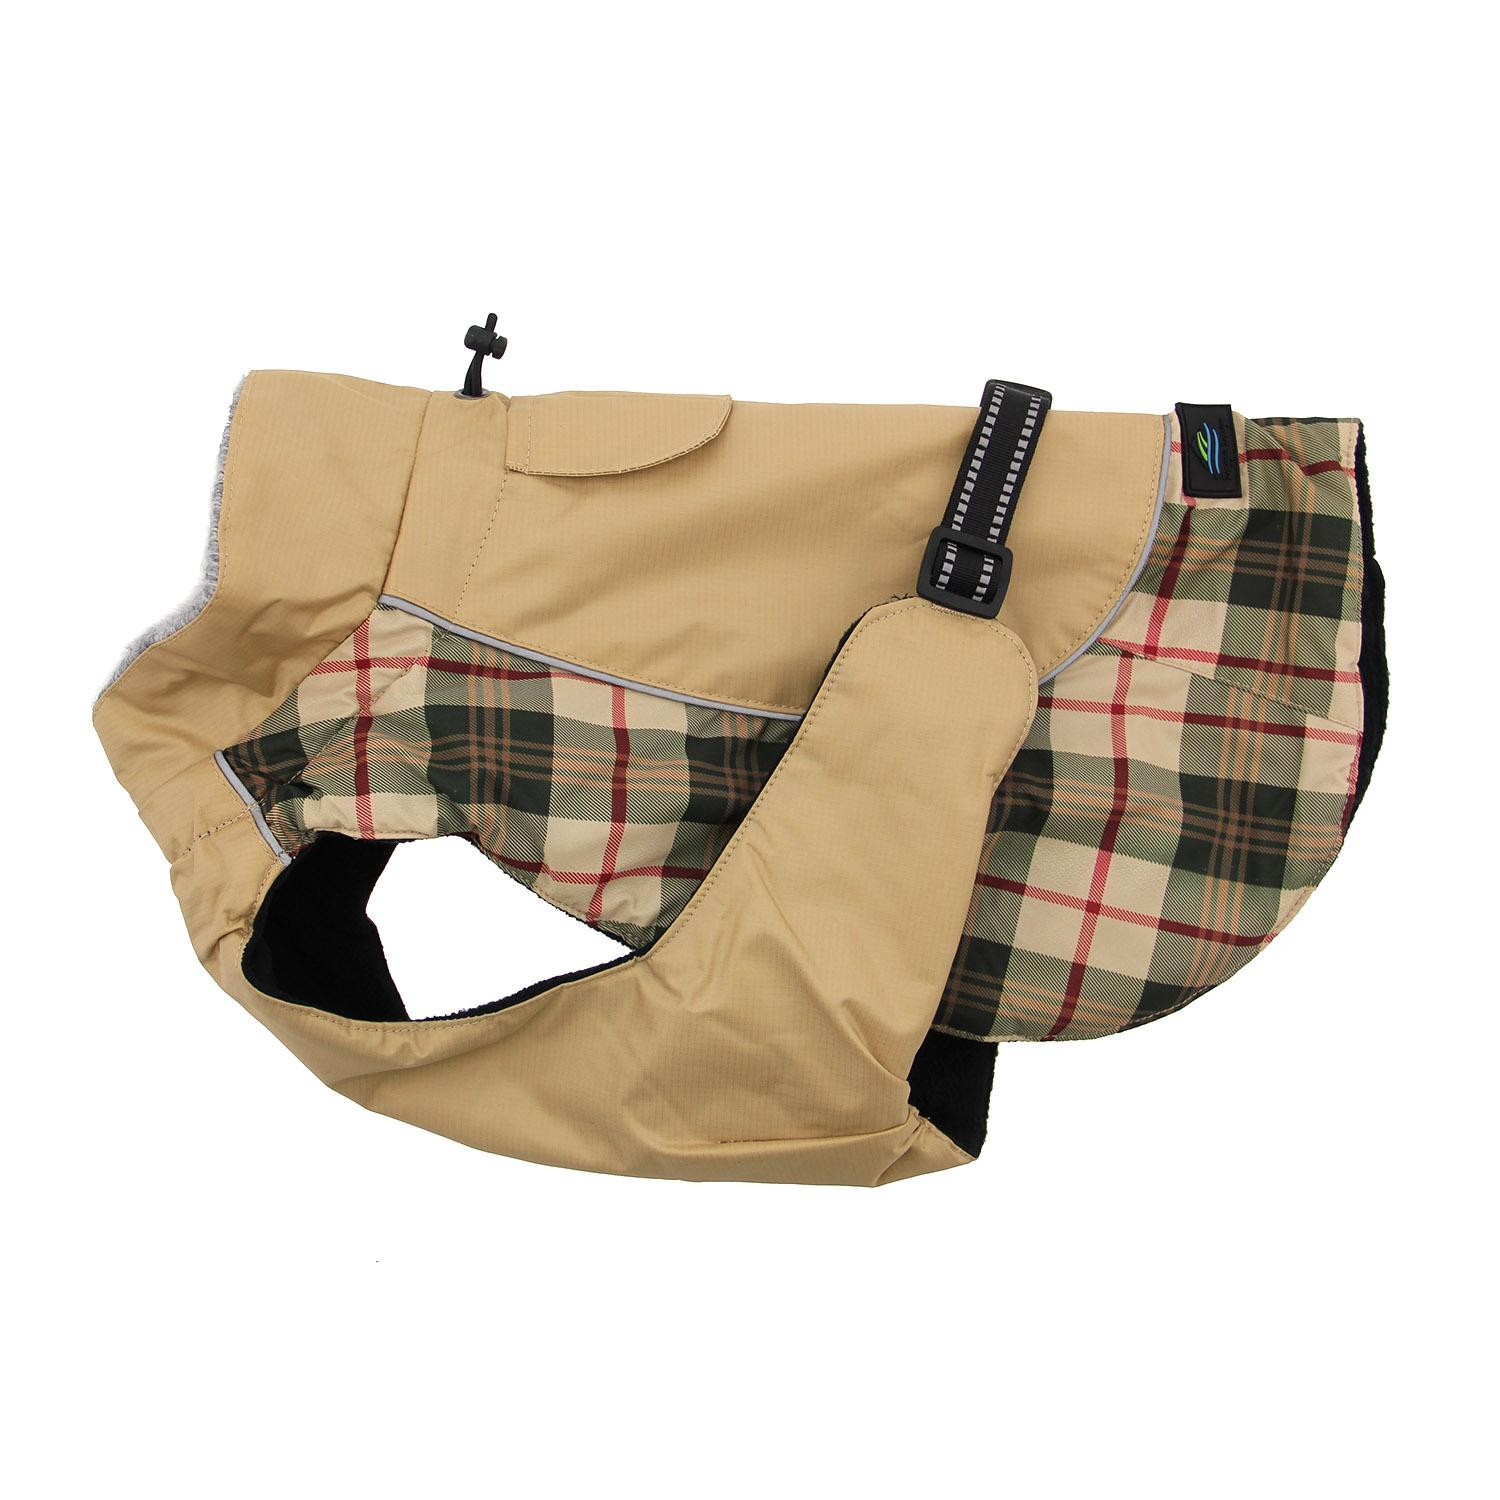 Doggie Design Alpine All-Weather Coat for Dogs, Plaid Beige, XX-Large